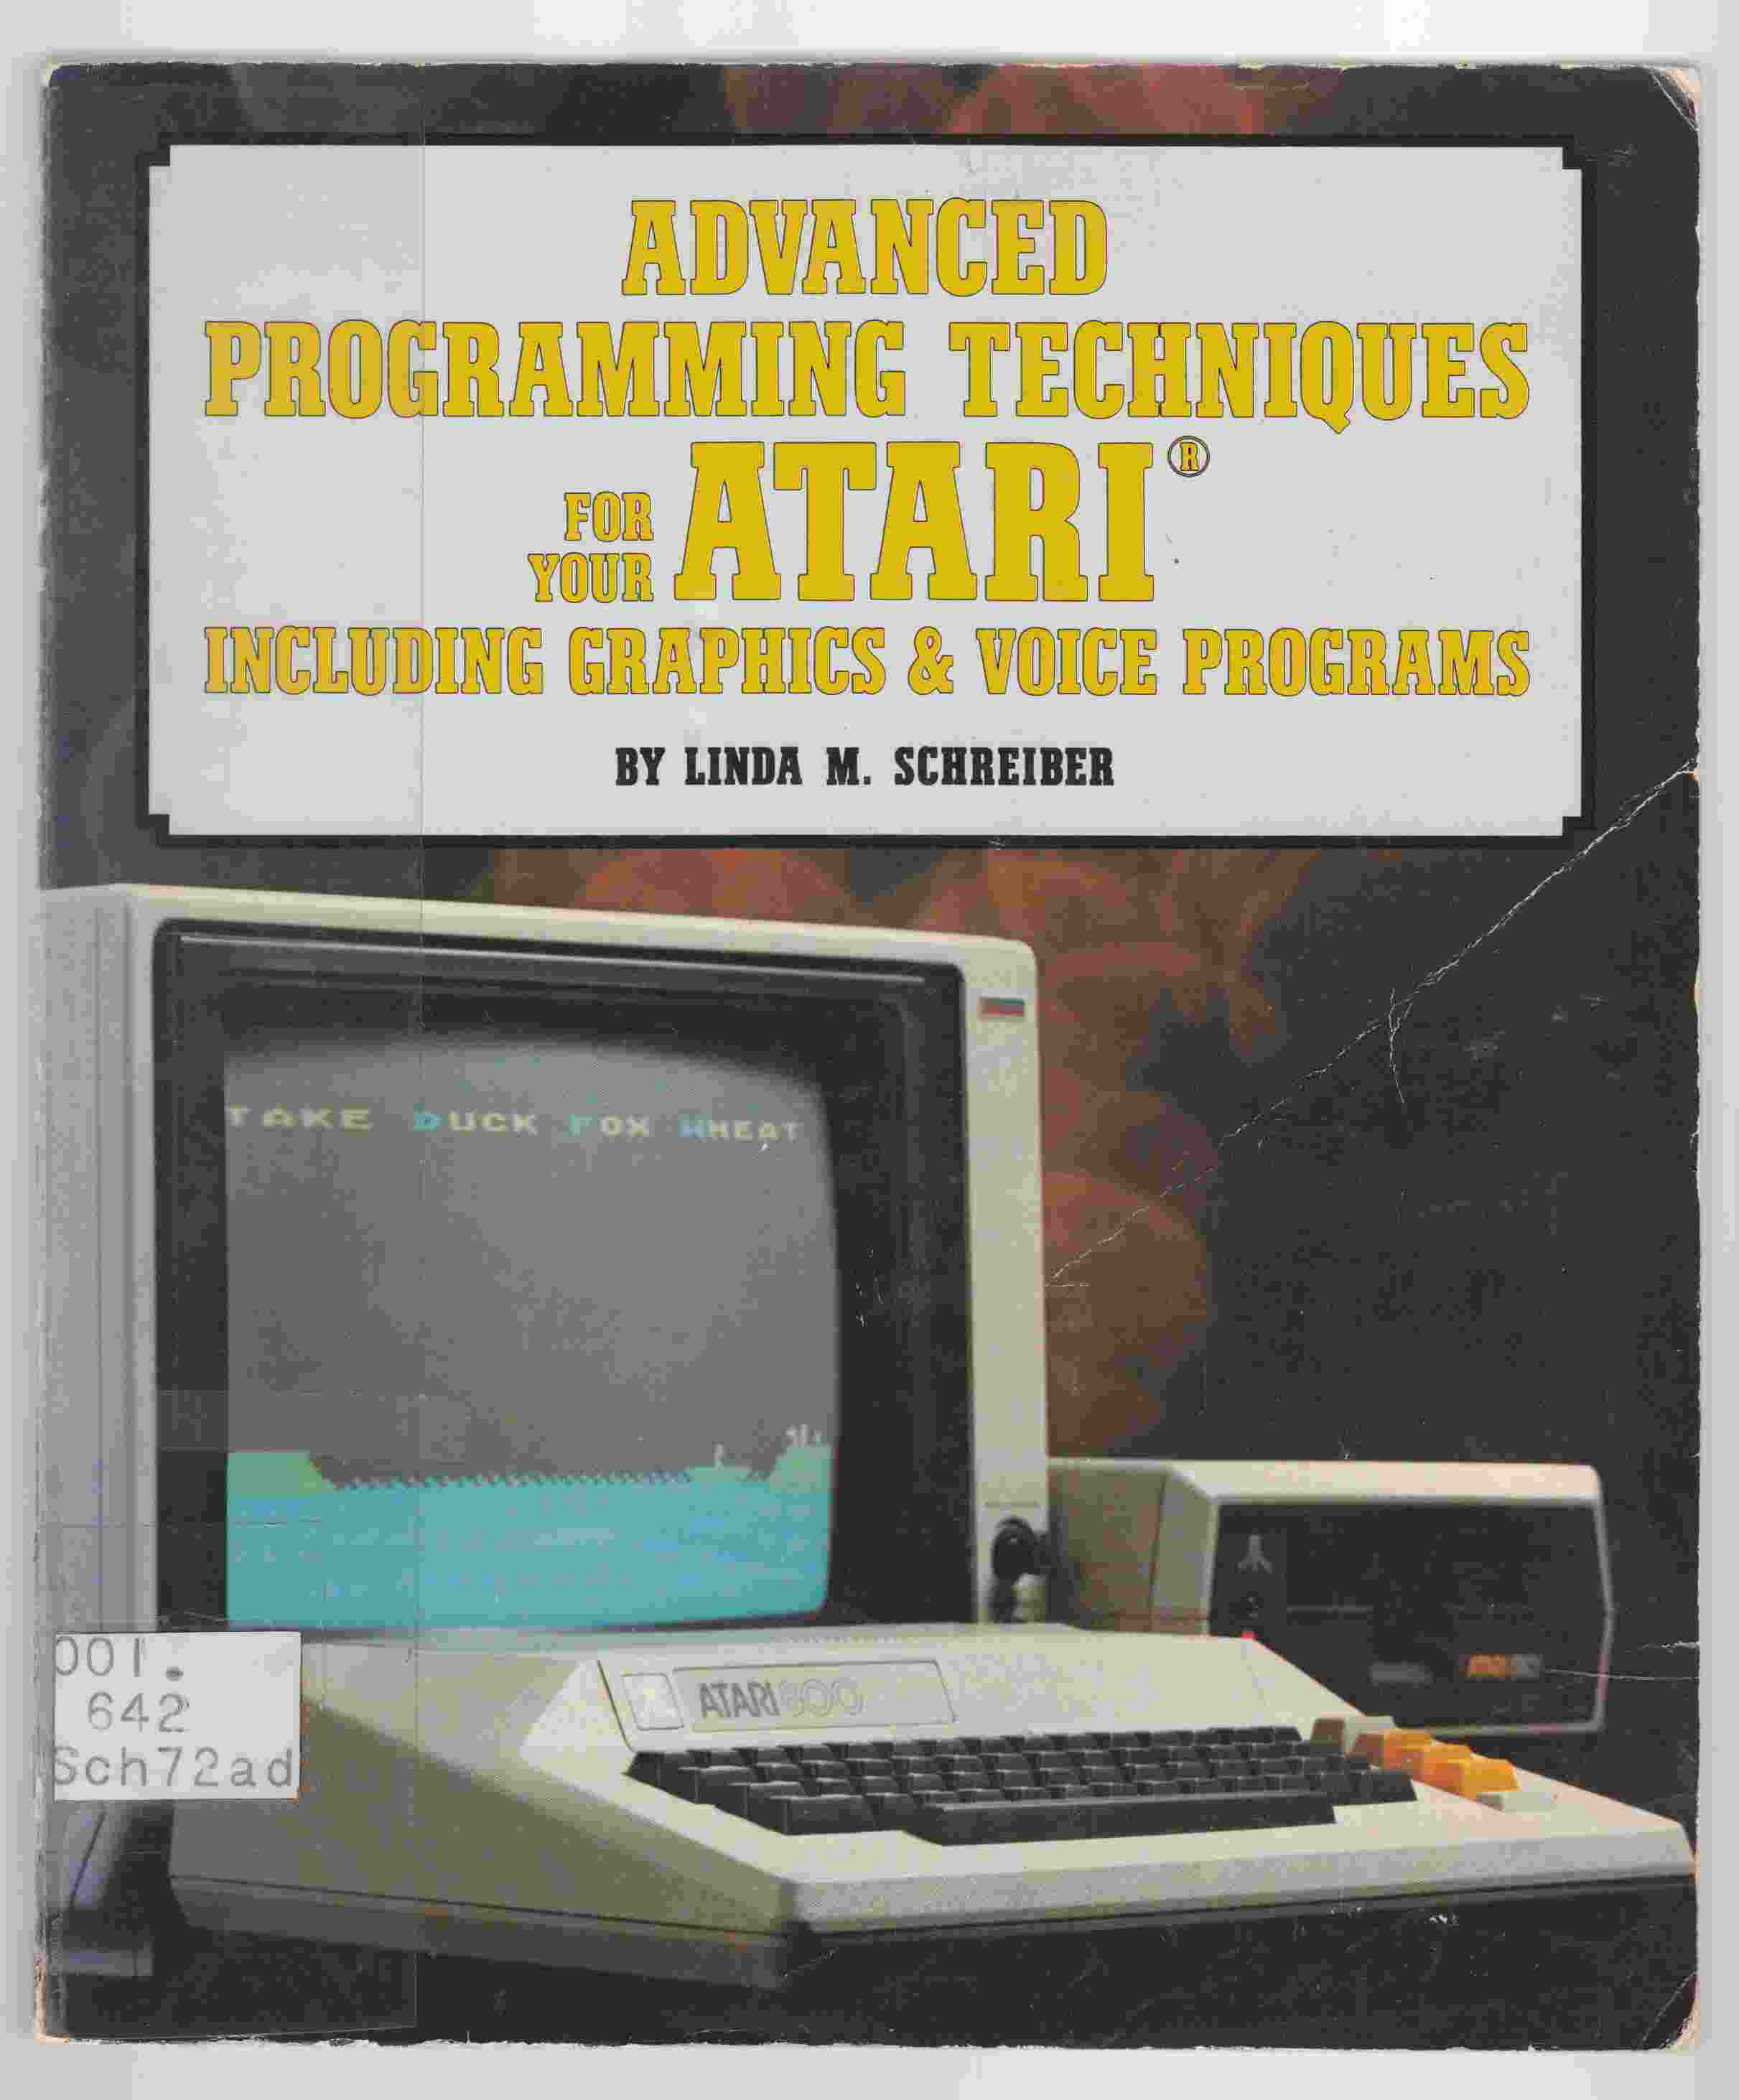 Image for Advanced Programming Techniques for Your Atari Including Graphics & Voice Programs